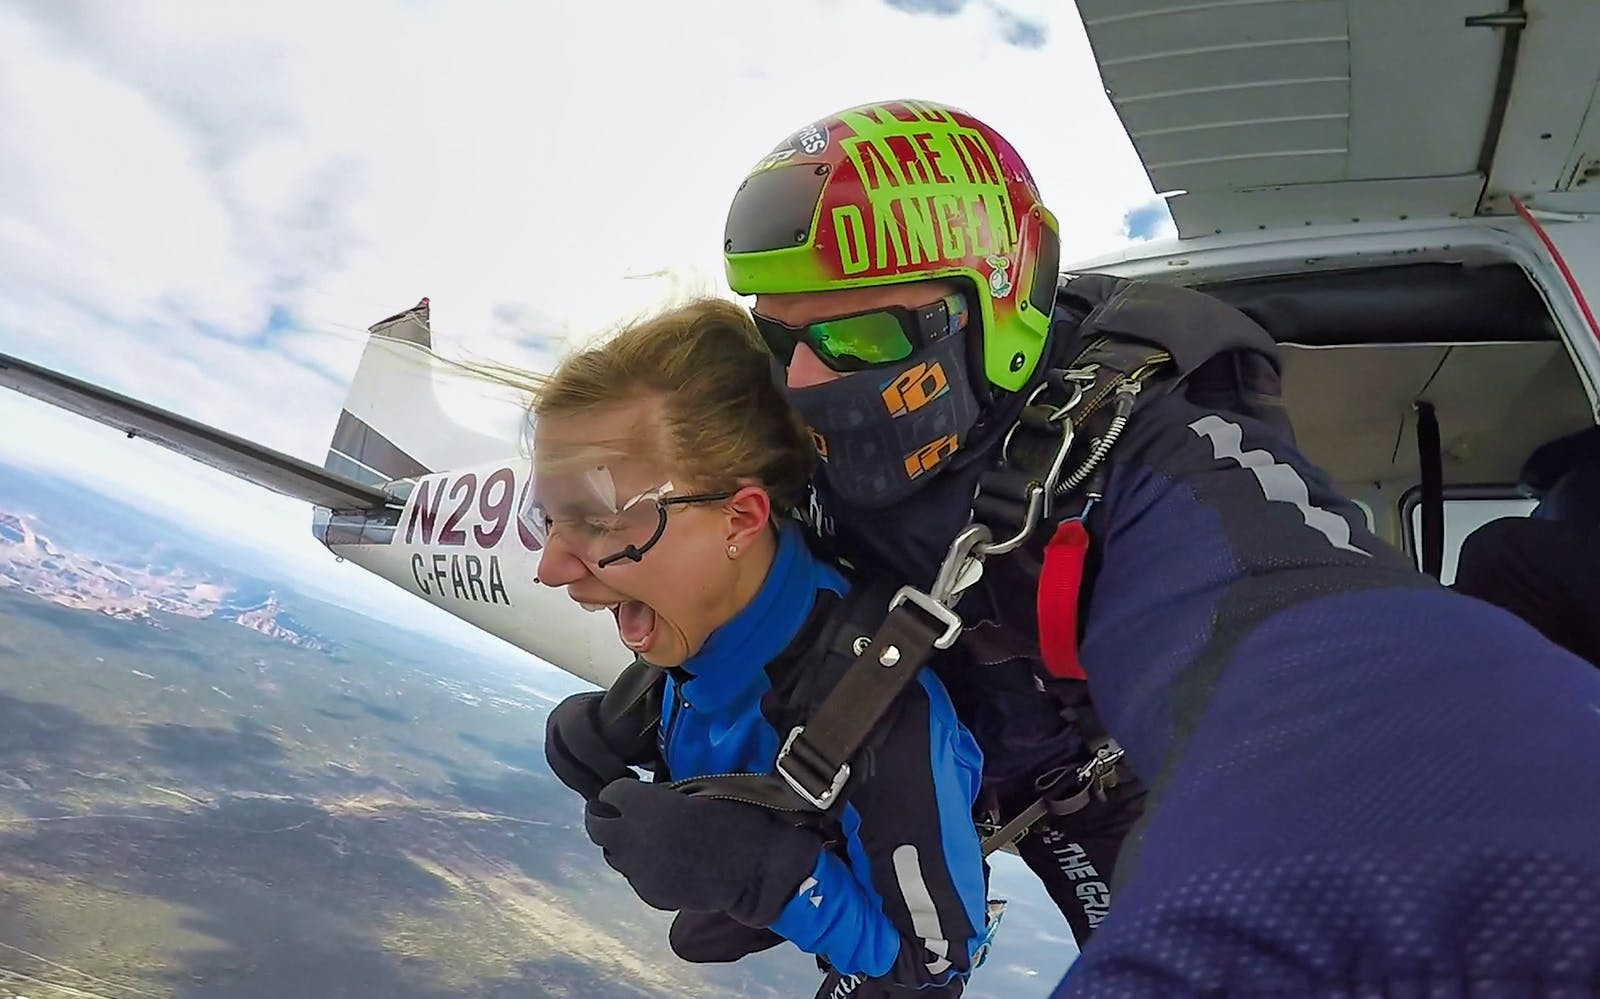 Skydiving at the Grand Canyon